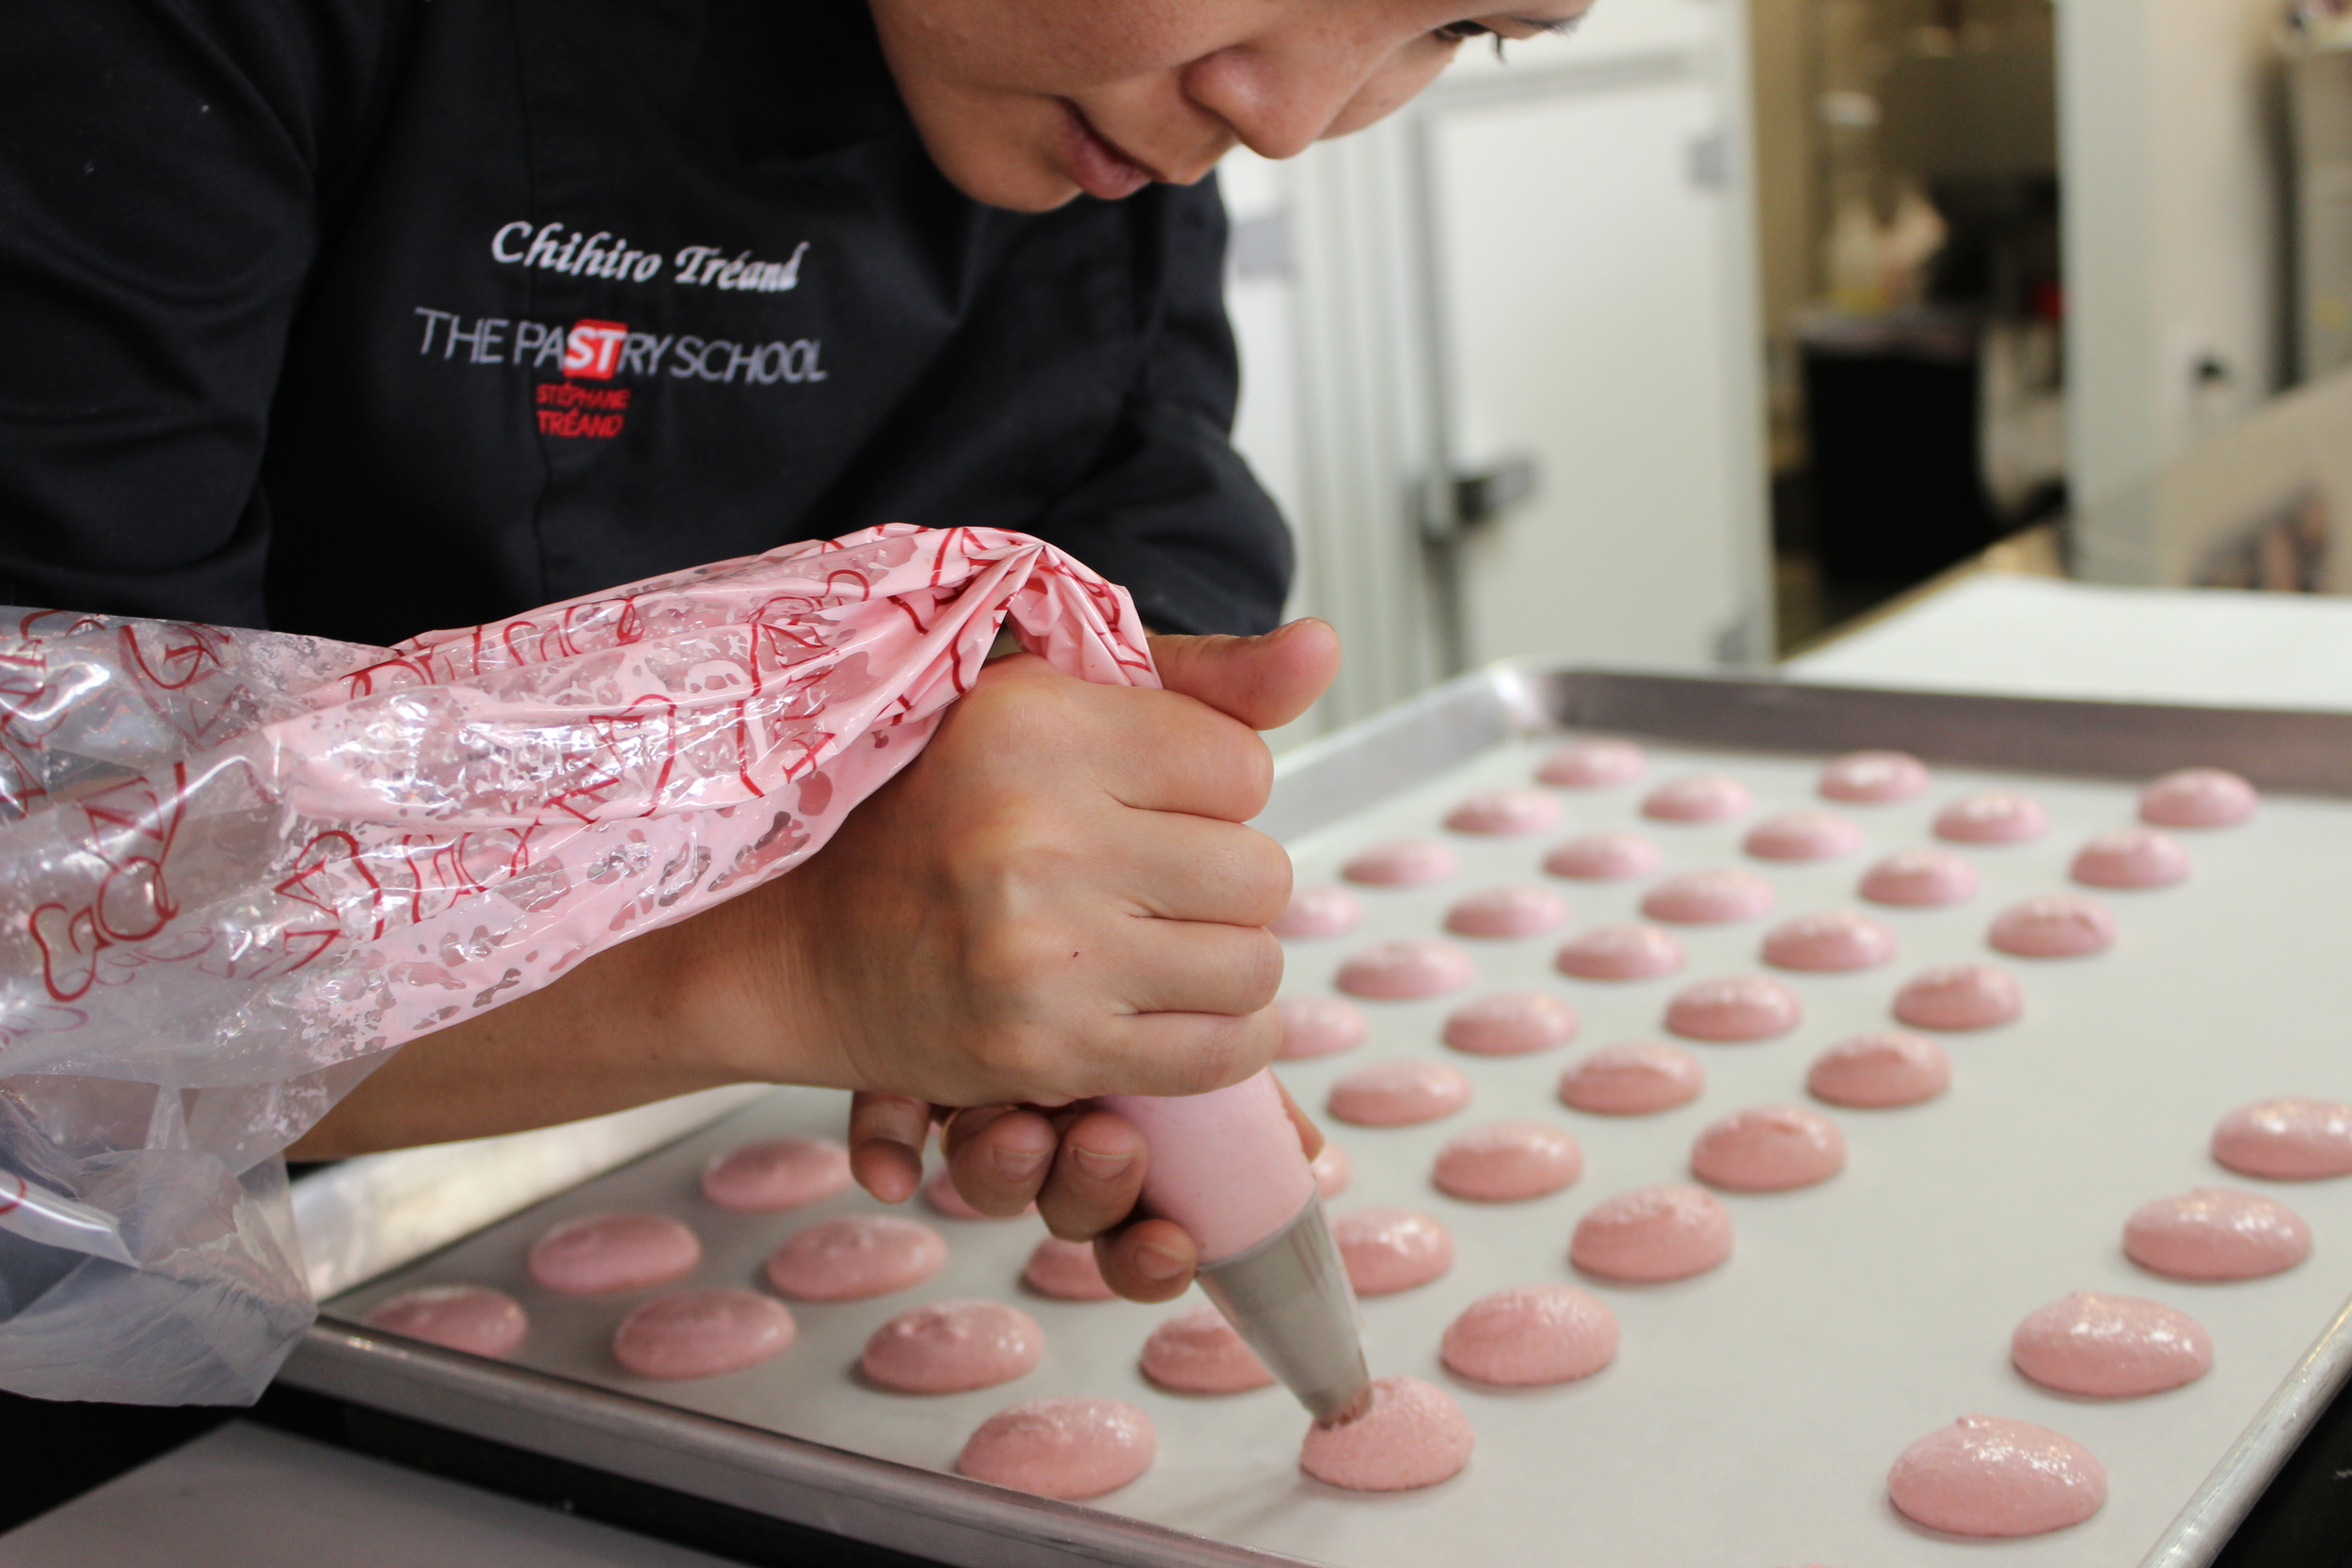 Each macaron is handcrafted by our talented chefs!